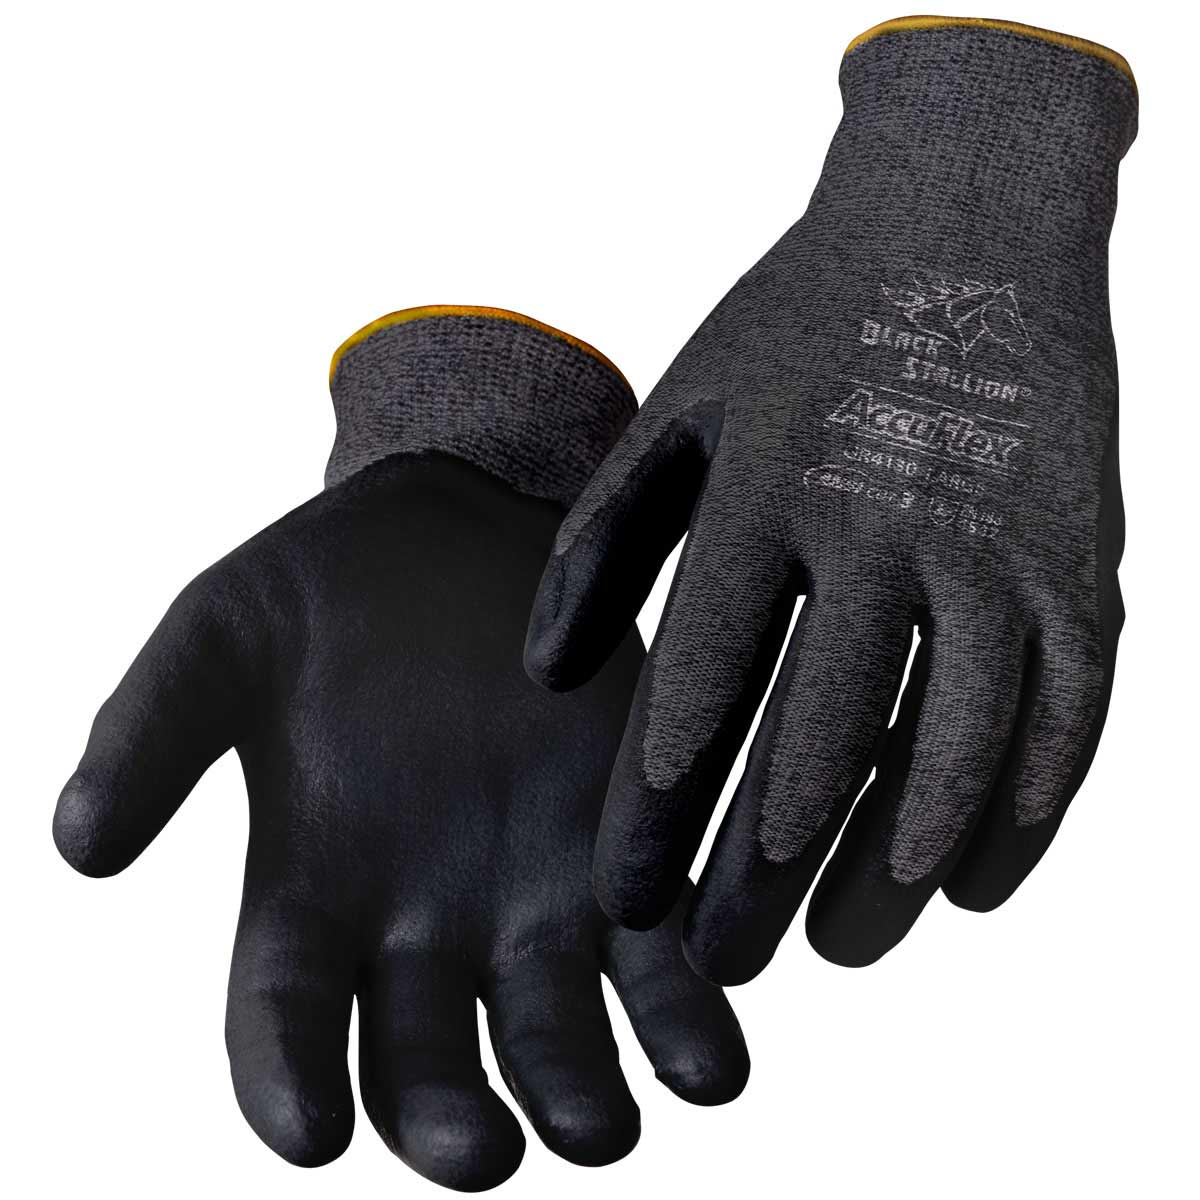 CUT RESISTANT SANDY NITRILE COATED HPPE GLOVES. Pack 12. X Large. GR4130-CH-XLG